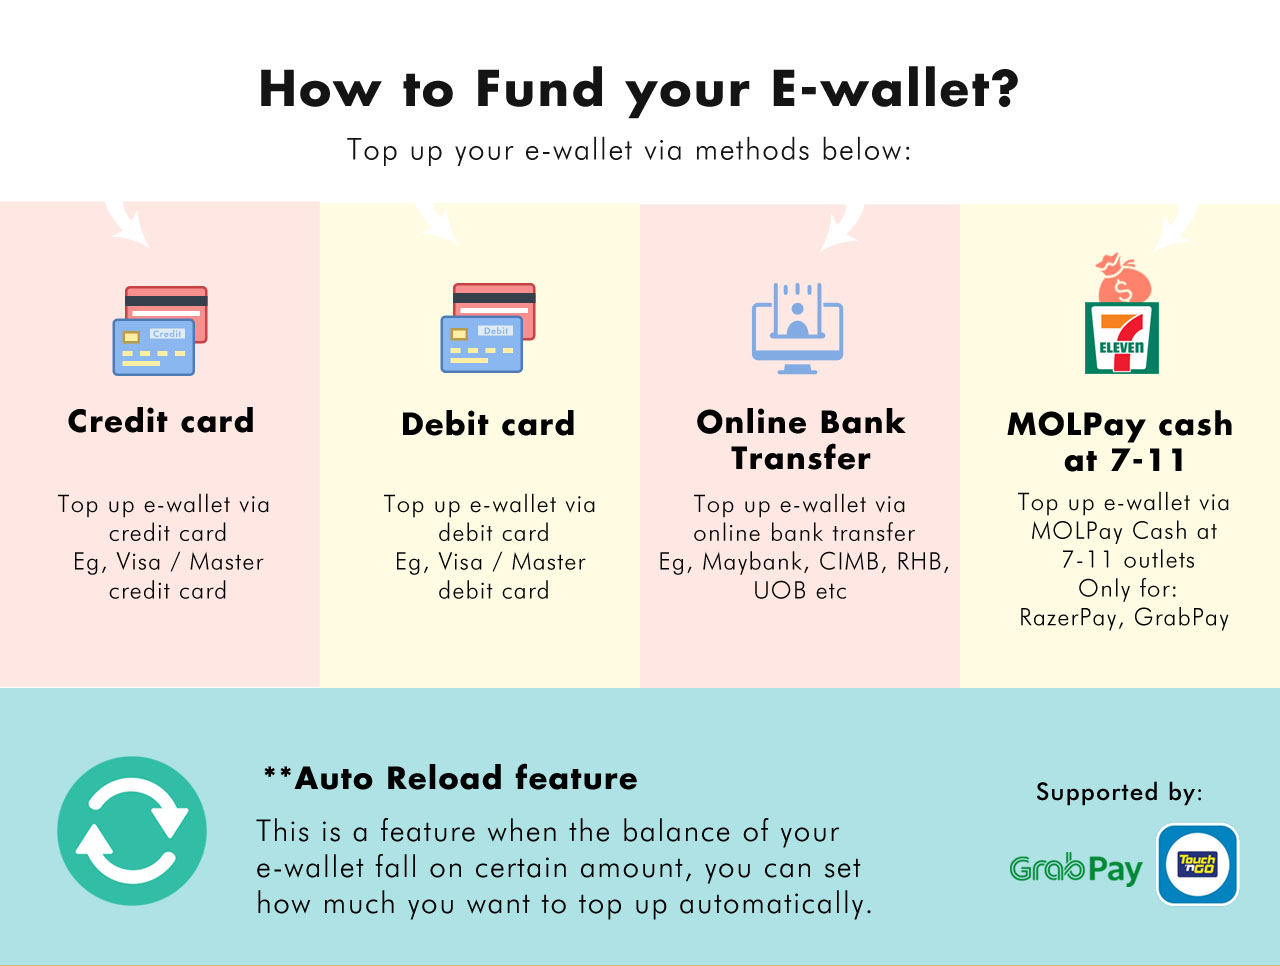 How to fund your e-wallet?